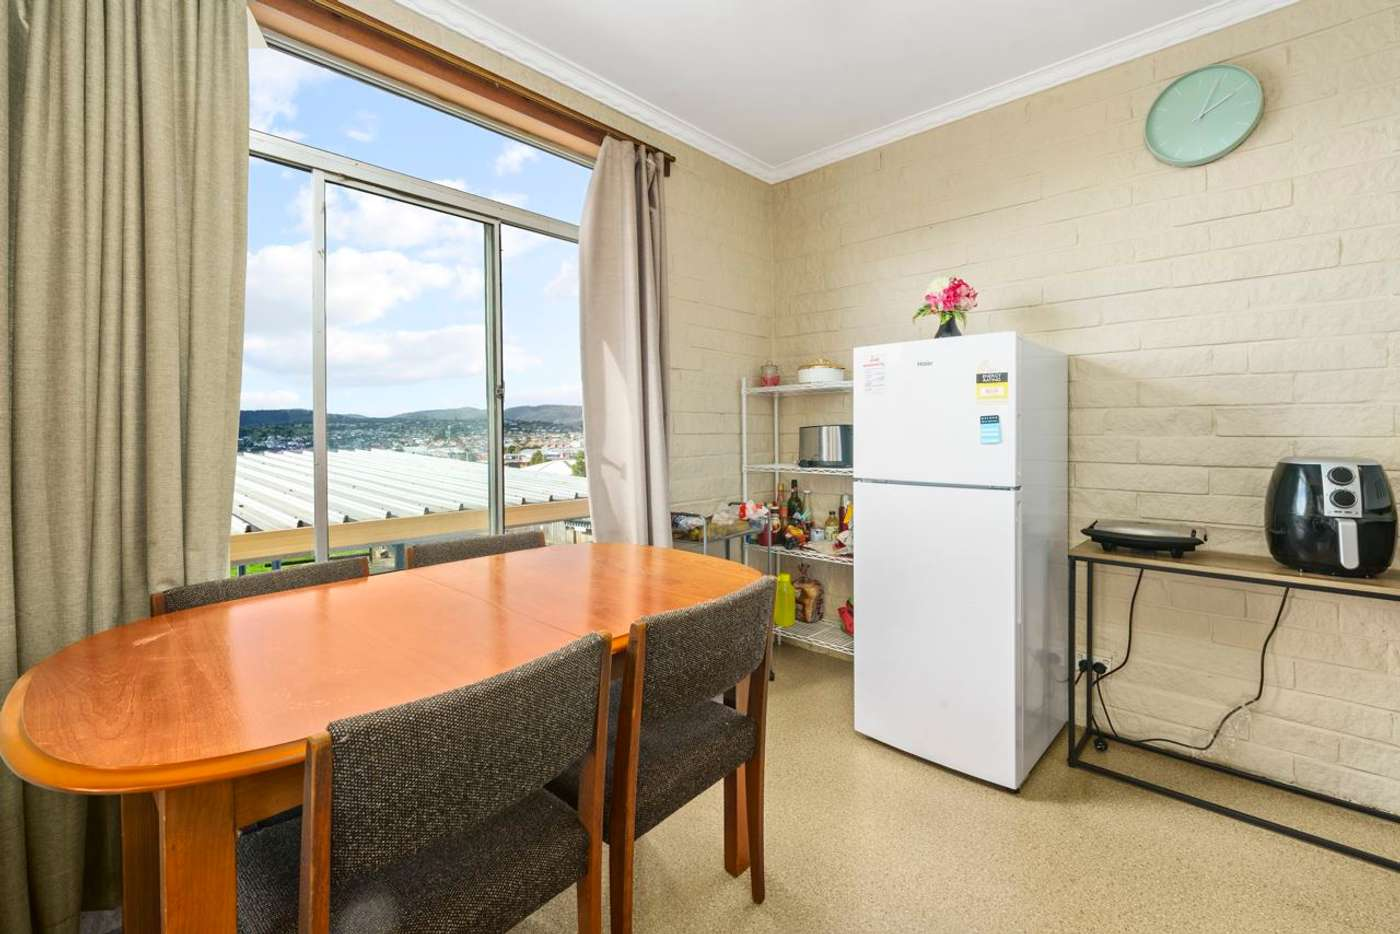 Sixth view of Homely flat listing, 1/16a Coleman Street, Moonah TAS 7009